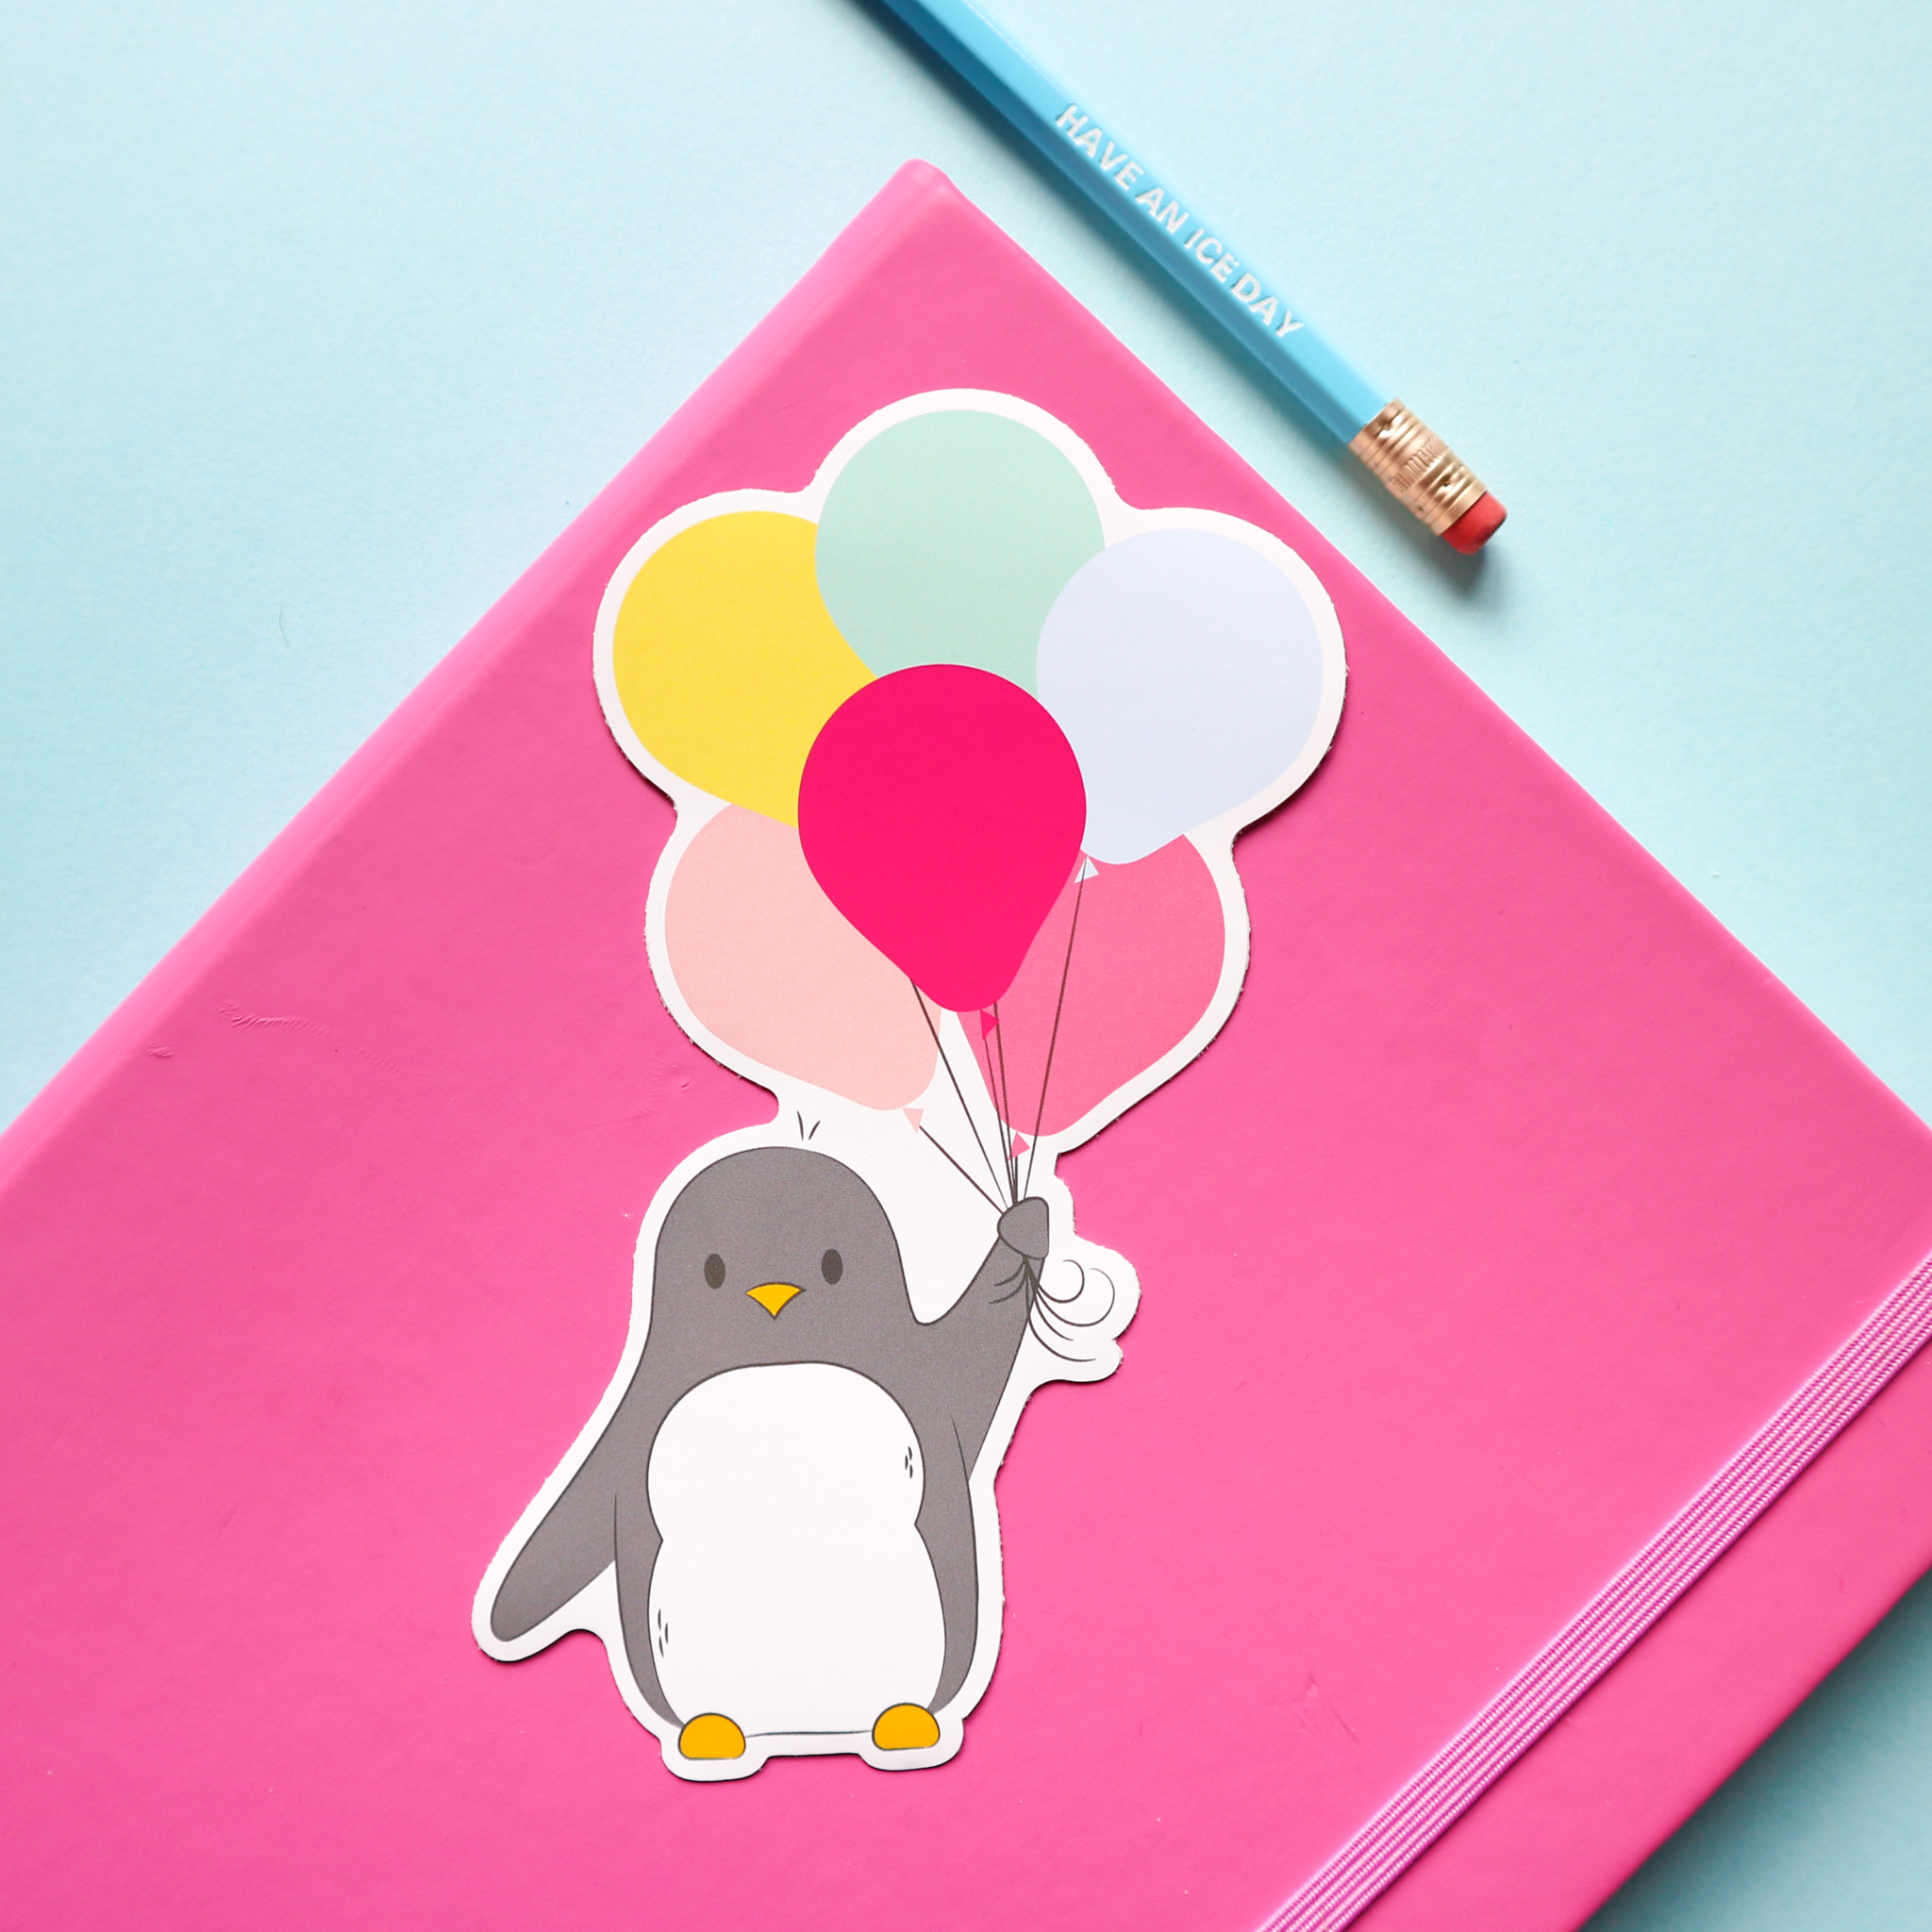 sticker design of Penguin holding a big bunch of colourful balloons. The balloons are pale pink, yellow, mint green, pale blue, bright pink and mid pink. Styled against a background of a pink notebook and a blue pencil, all against a pale blue background.